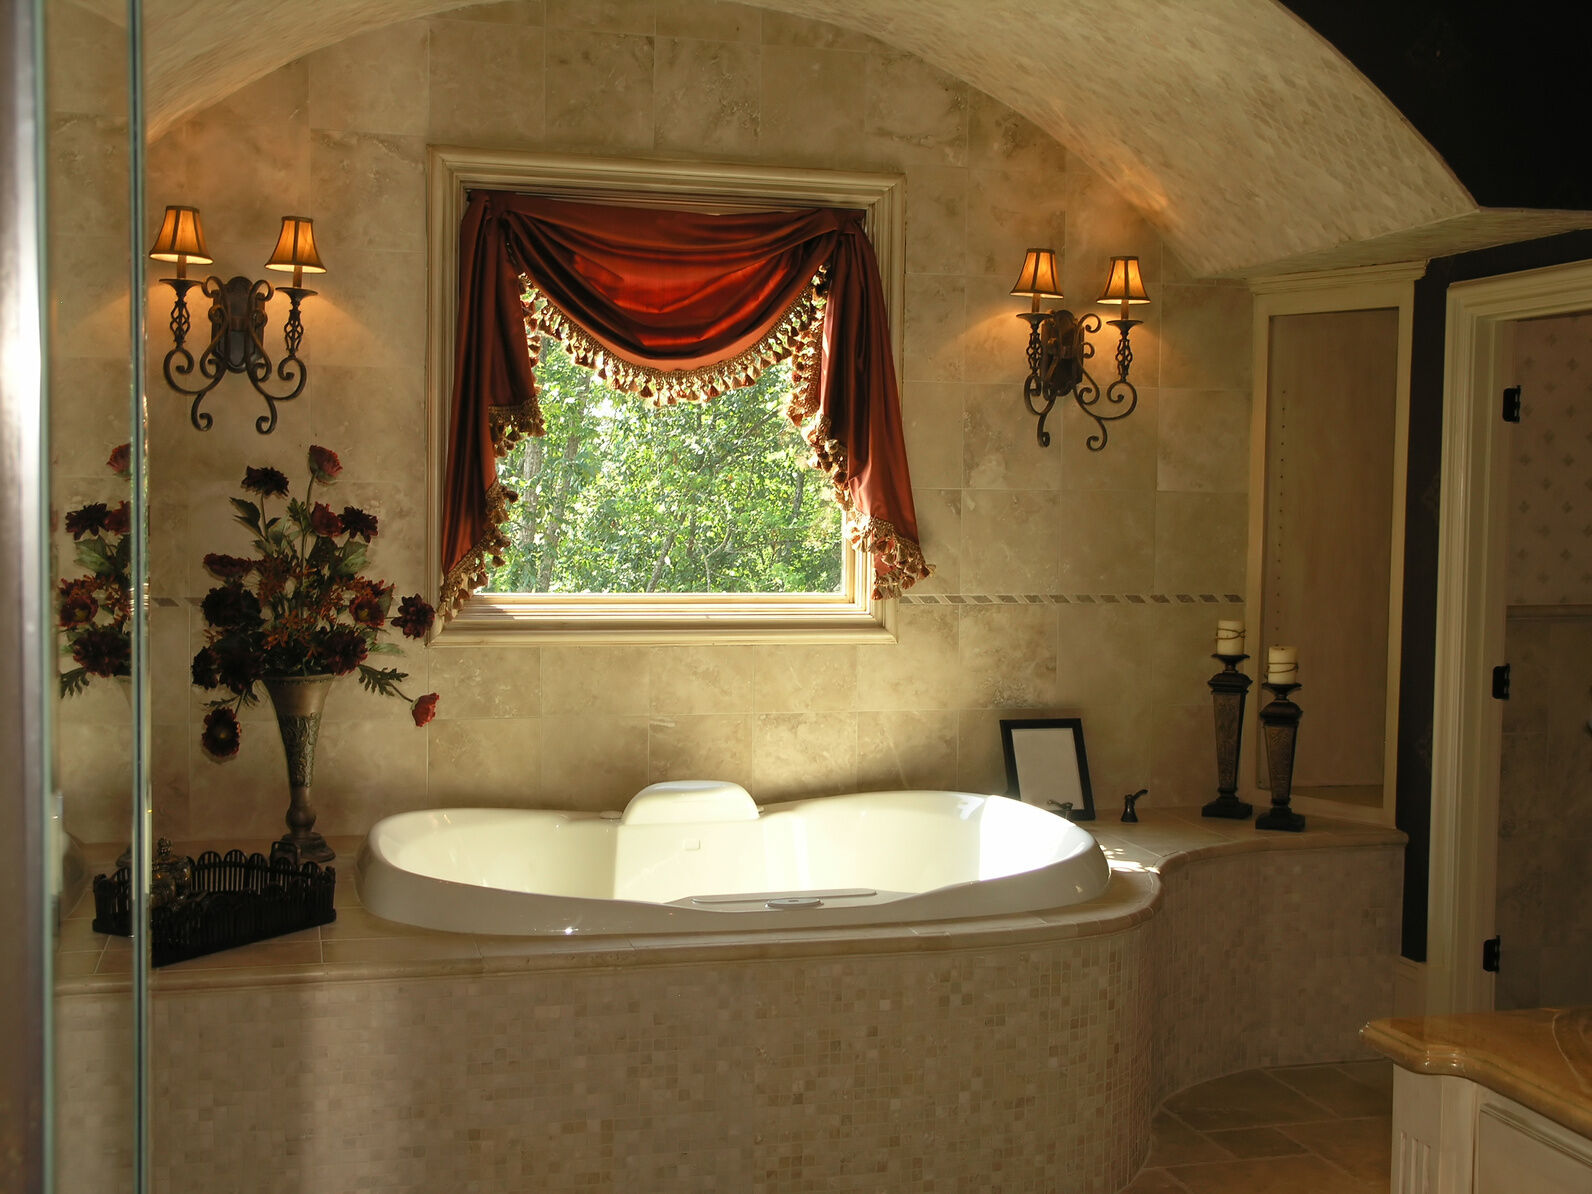 Garden Bathtub Decorating Ideas bathroom stunning ideas corner bathtub design bathroom sink 21 youtube Garden Design With How To Decorate A Garden Tub Ebay With Landscaping Pics From Ebay